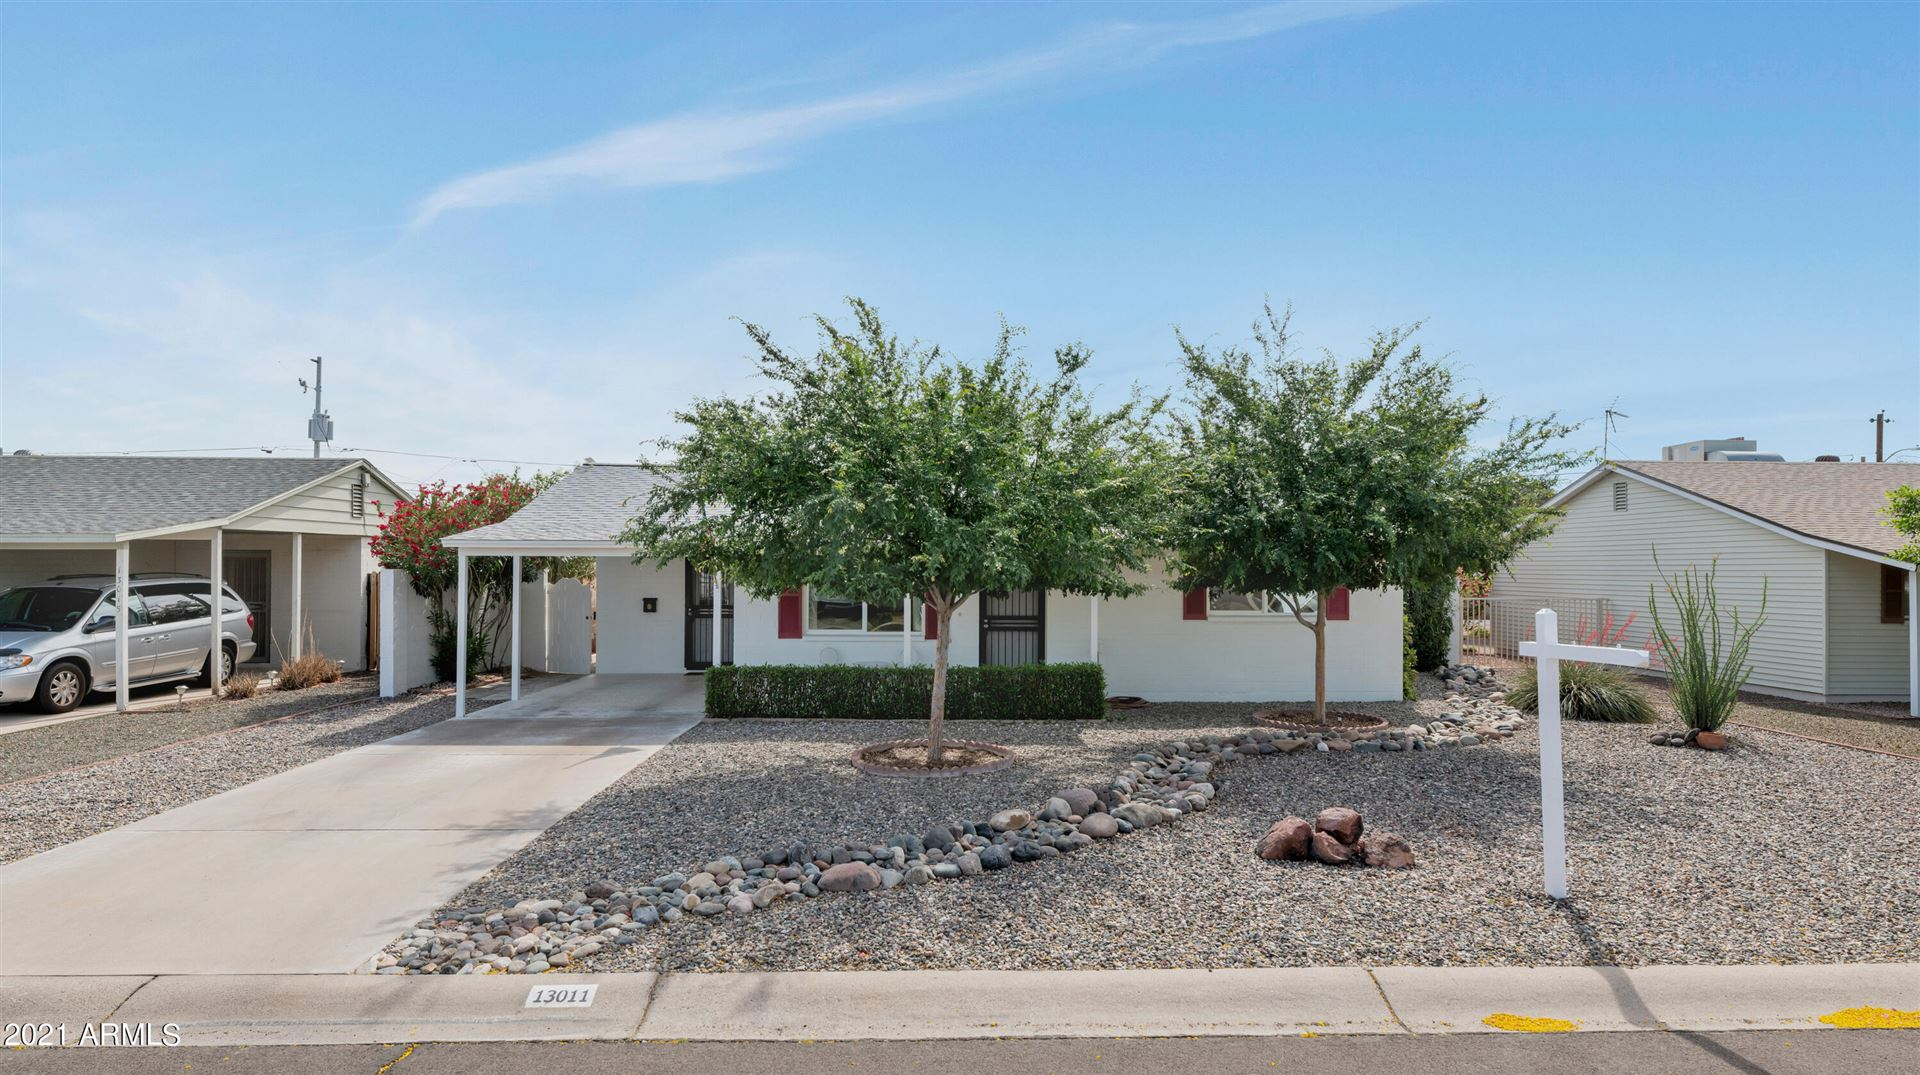 Photo of 13011 N 112TH Avenue, Youngtown, AZ 85363 (MLS # 6228453)